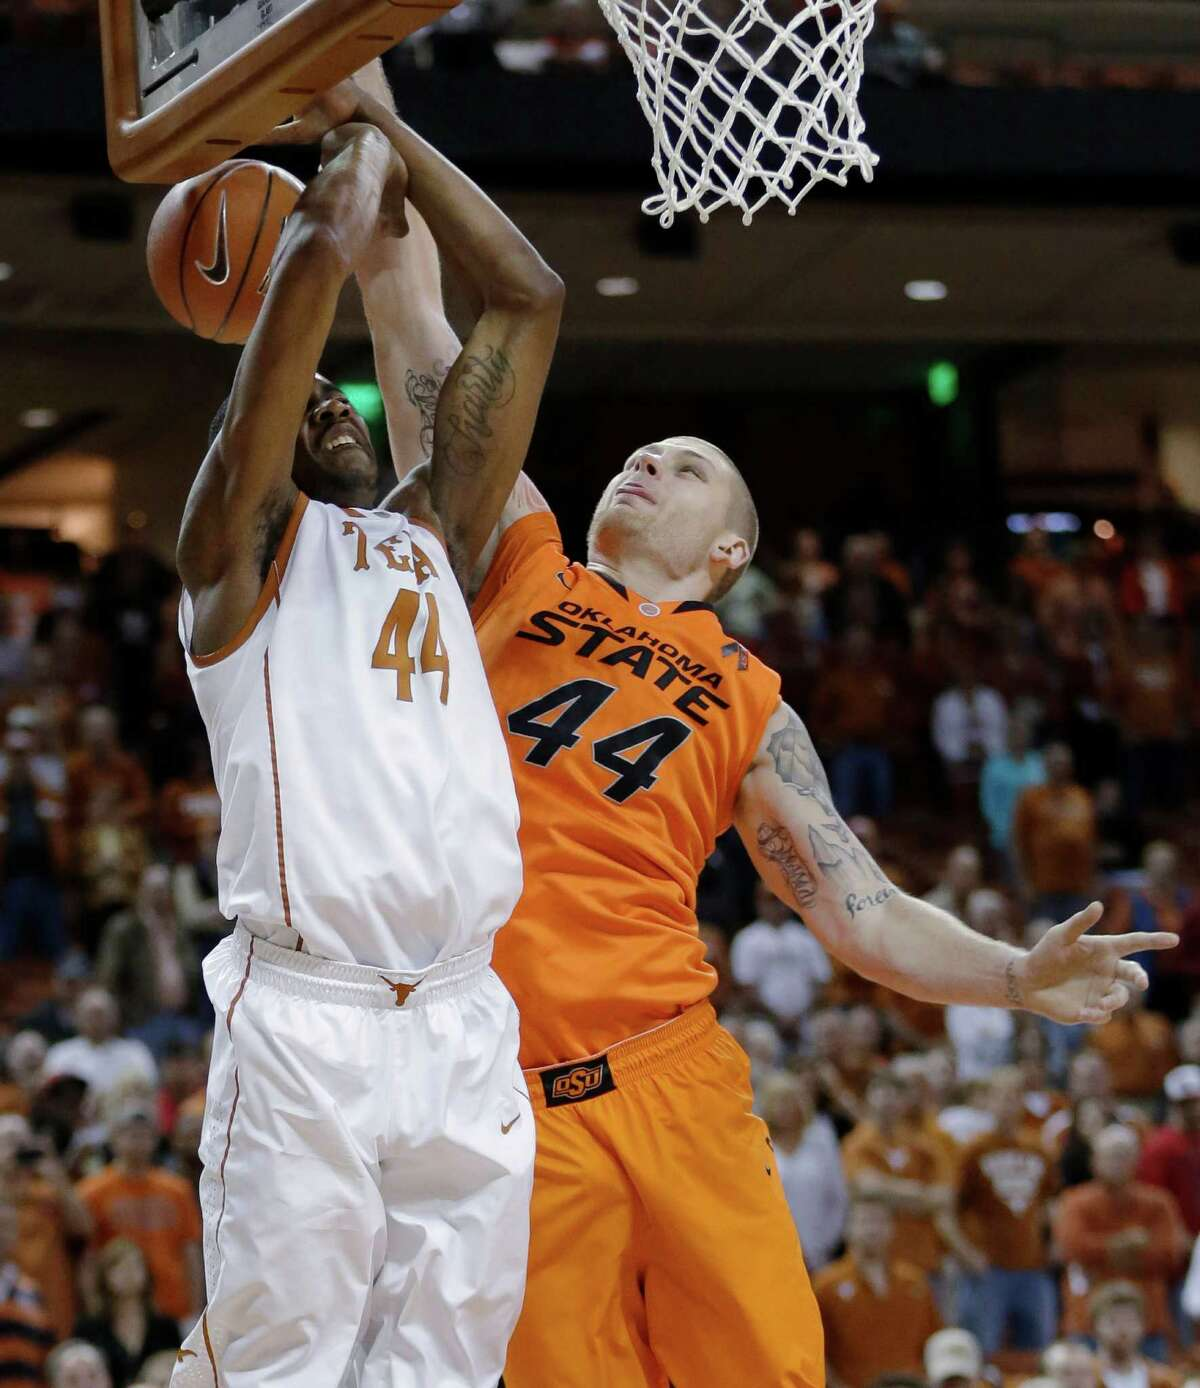 Texas' Prince Ibeh, left, is blocked by Oklahoma State defender Philip Jurick, right, as he tries to score during the first half of an NCAA college basketball game, Saturday, Feb. 9, 2013, in Austin, Texas. (AP Photo/Eric Gay)